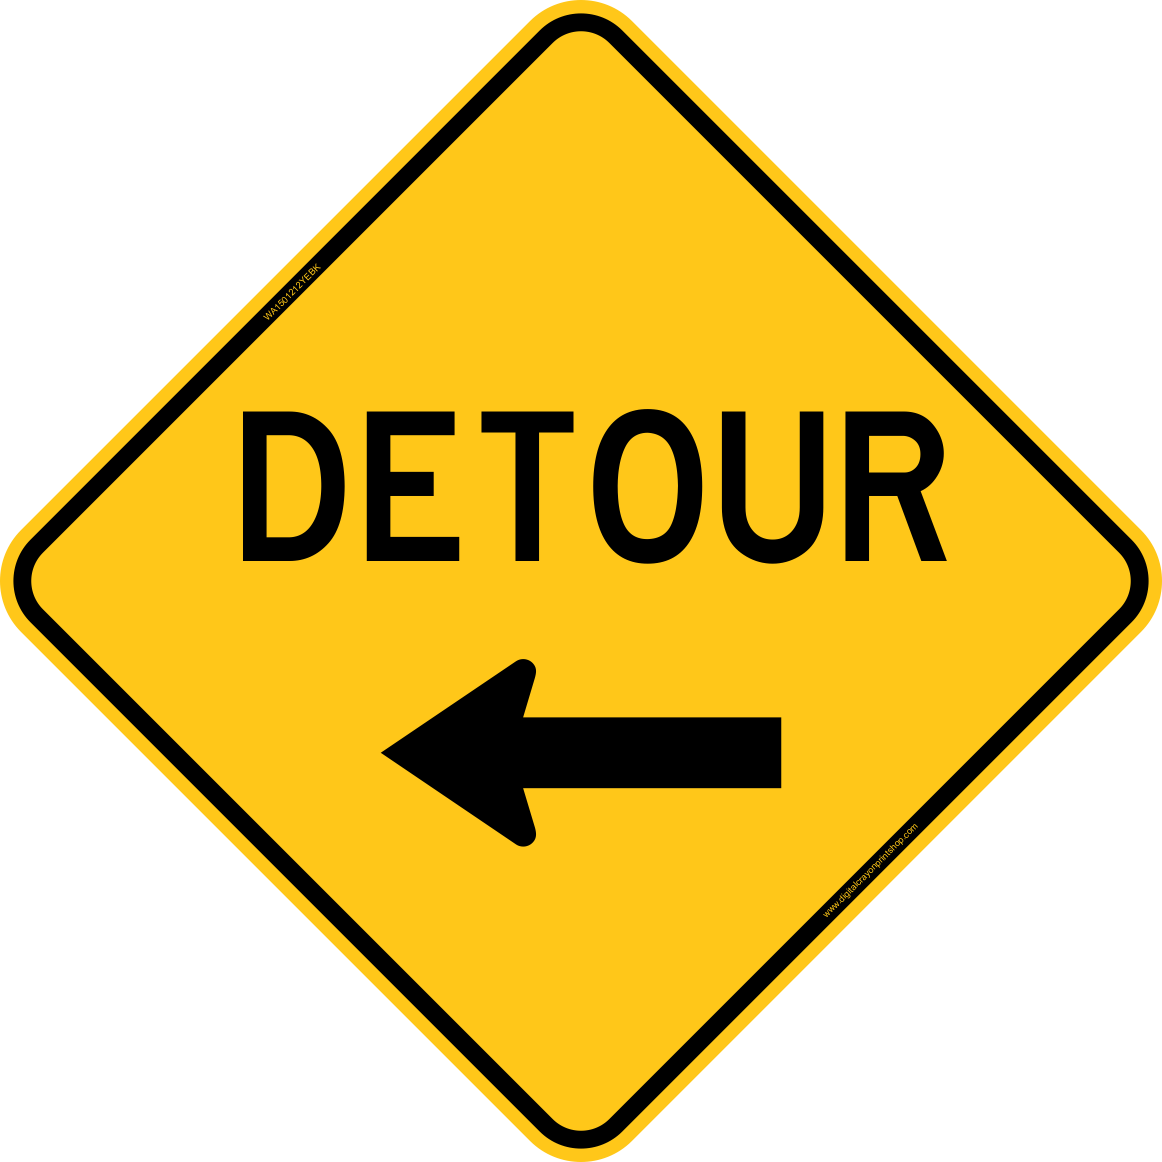 Detour With Left Arrow Warning Trail Sign Clipart.